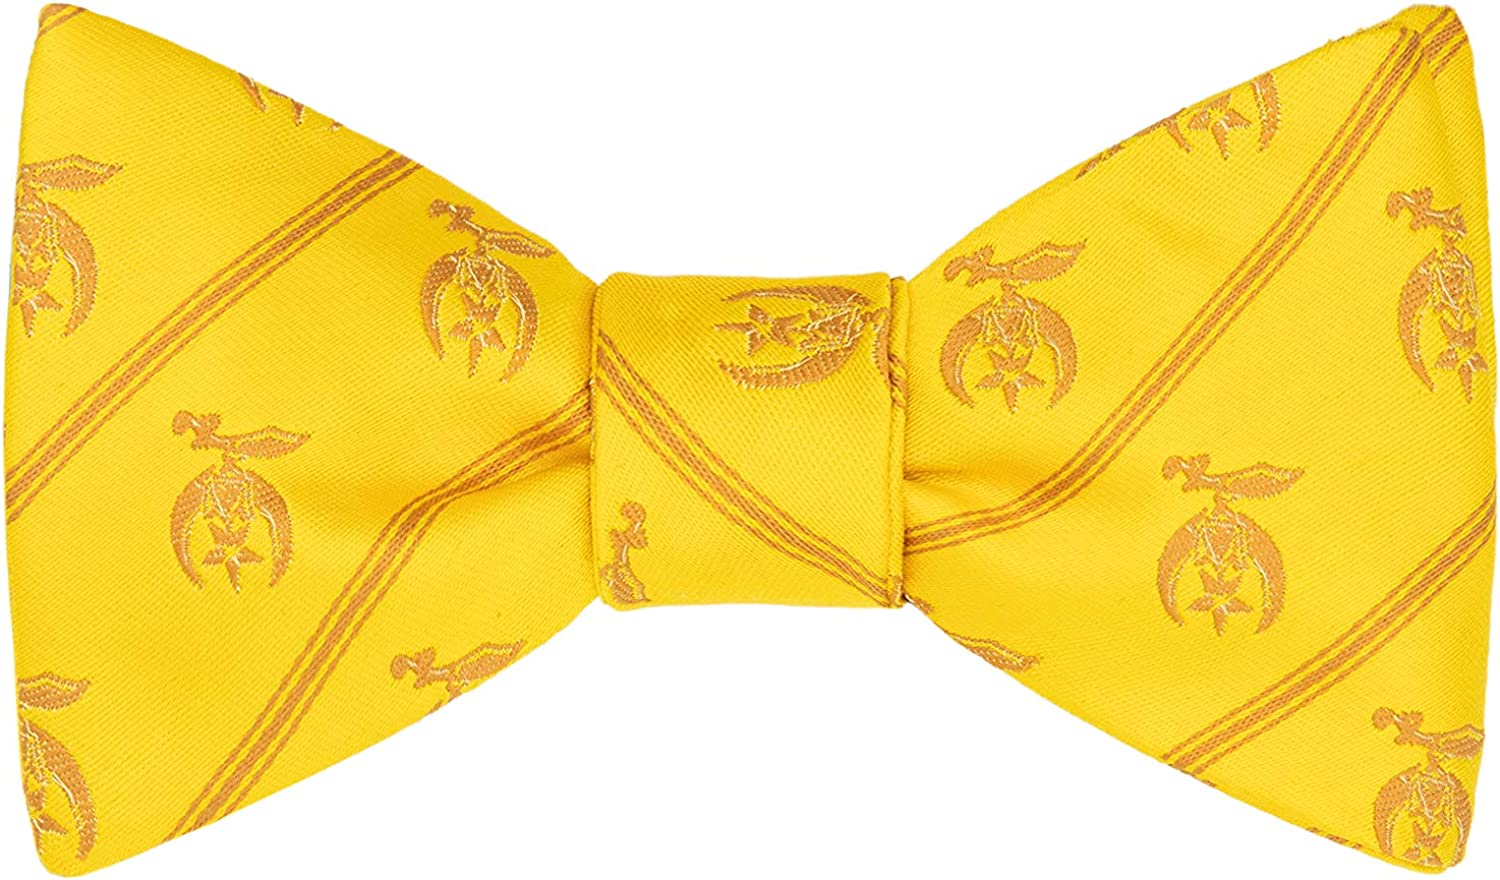 Max 56% OFF Shriner Bow Tie by Masonic Department store Standard Revival Gold -